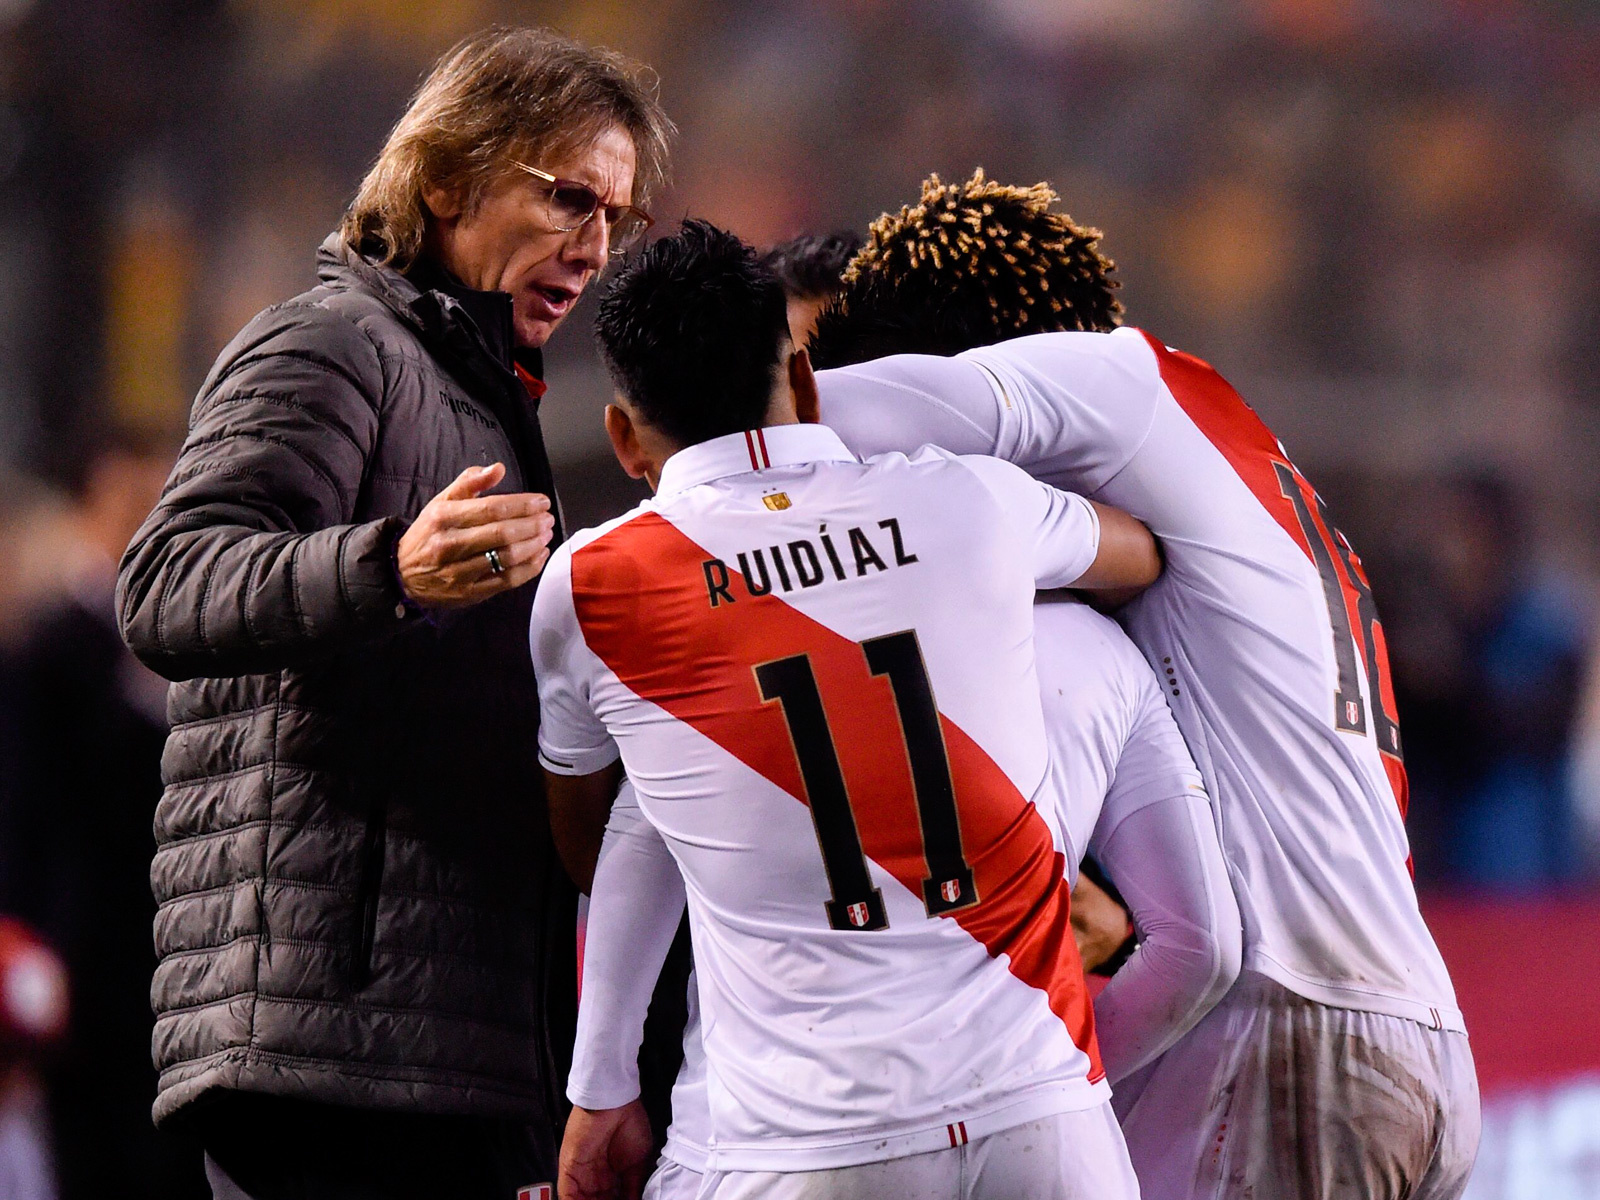 Peru is hoping to make noise at Copa America